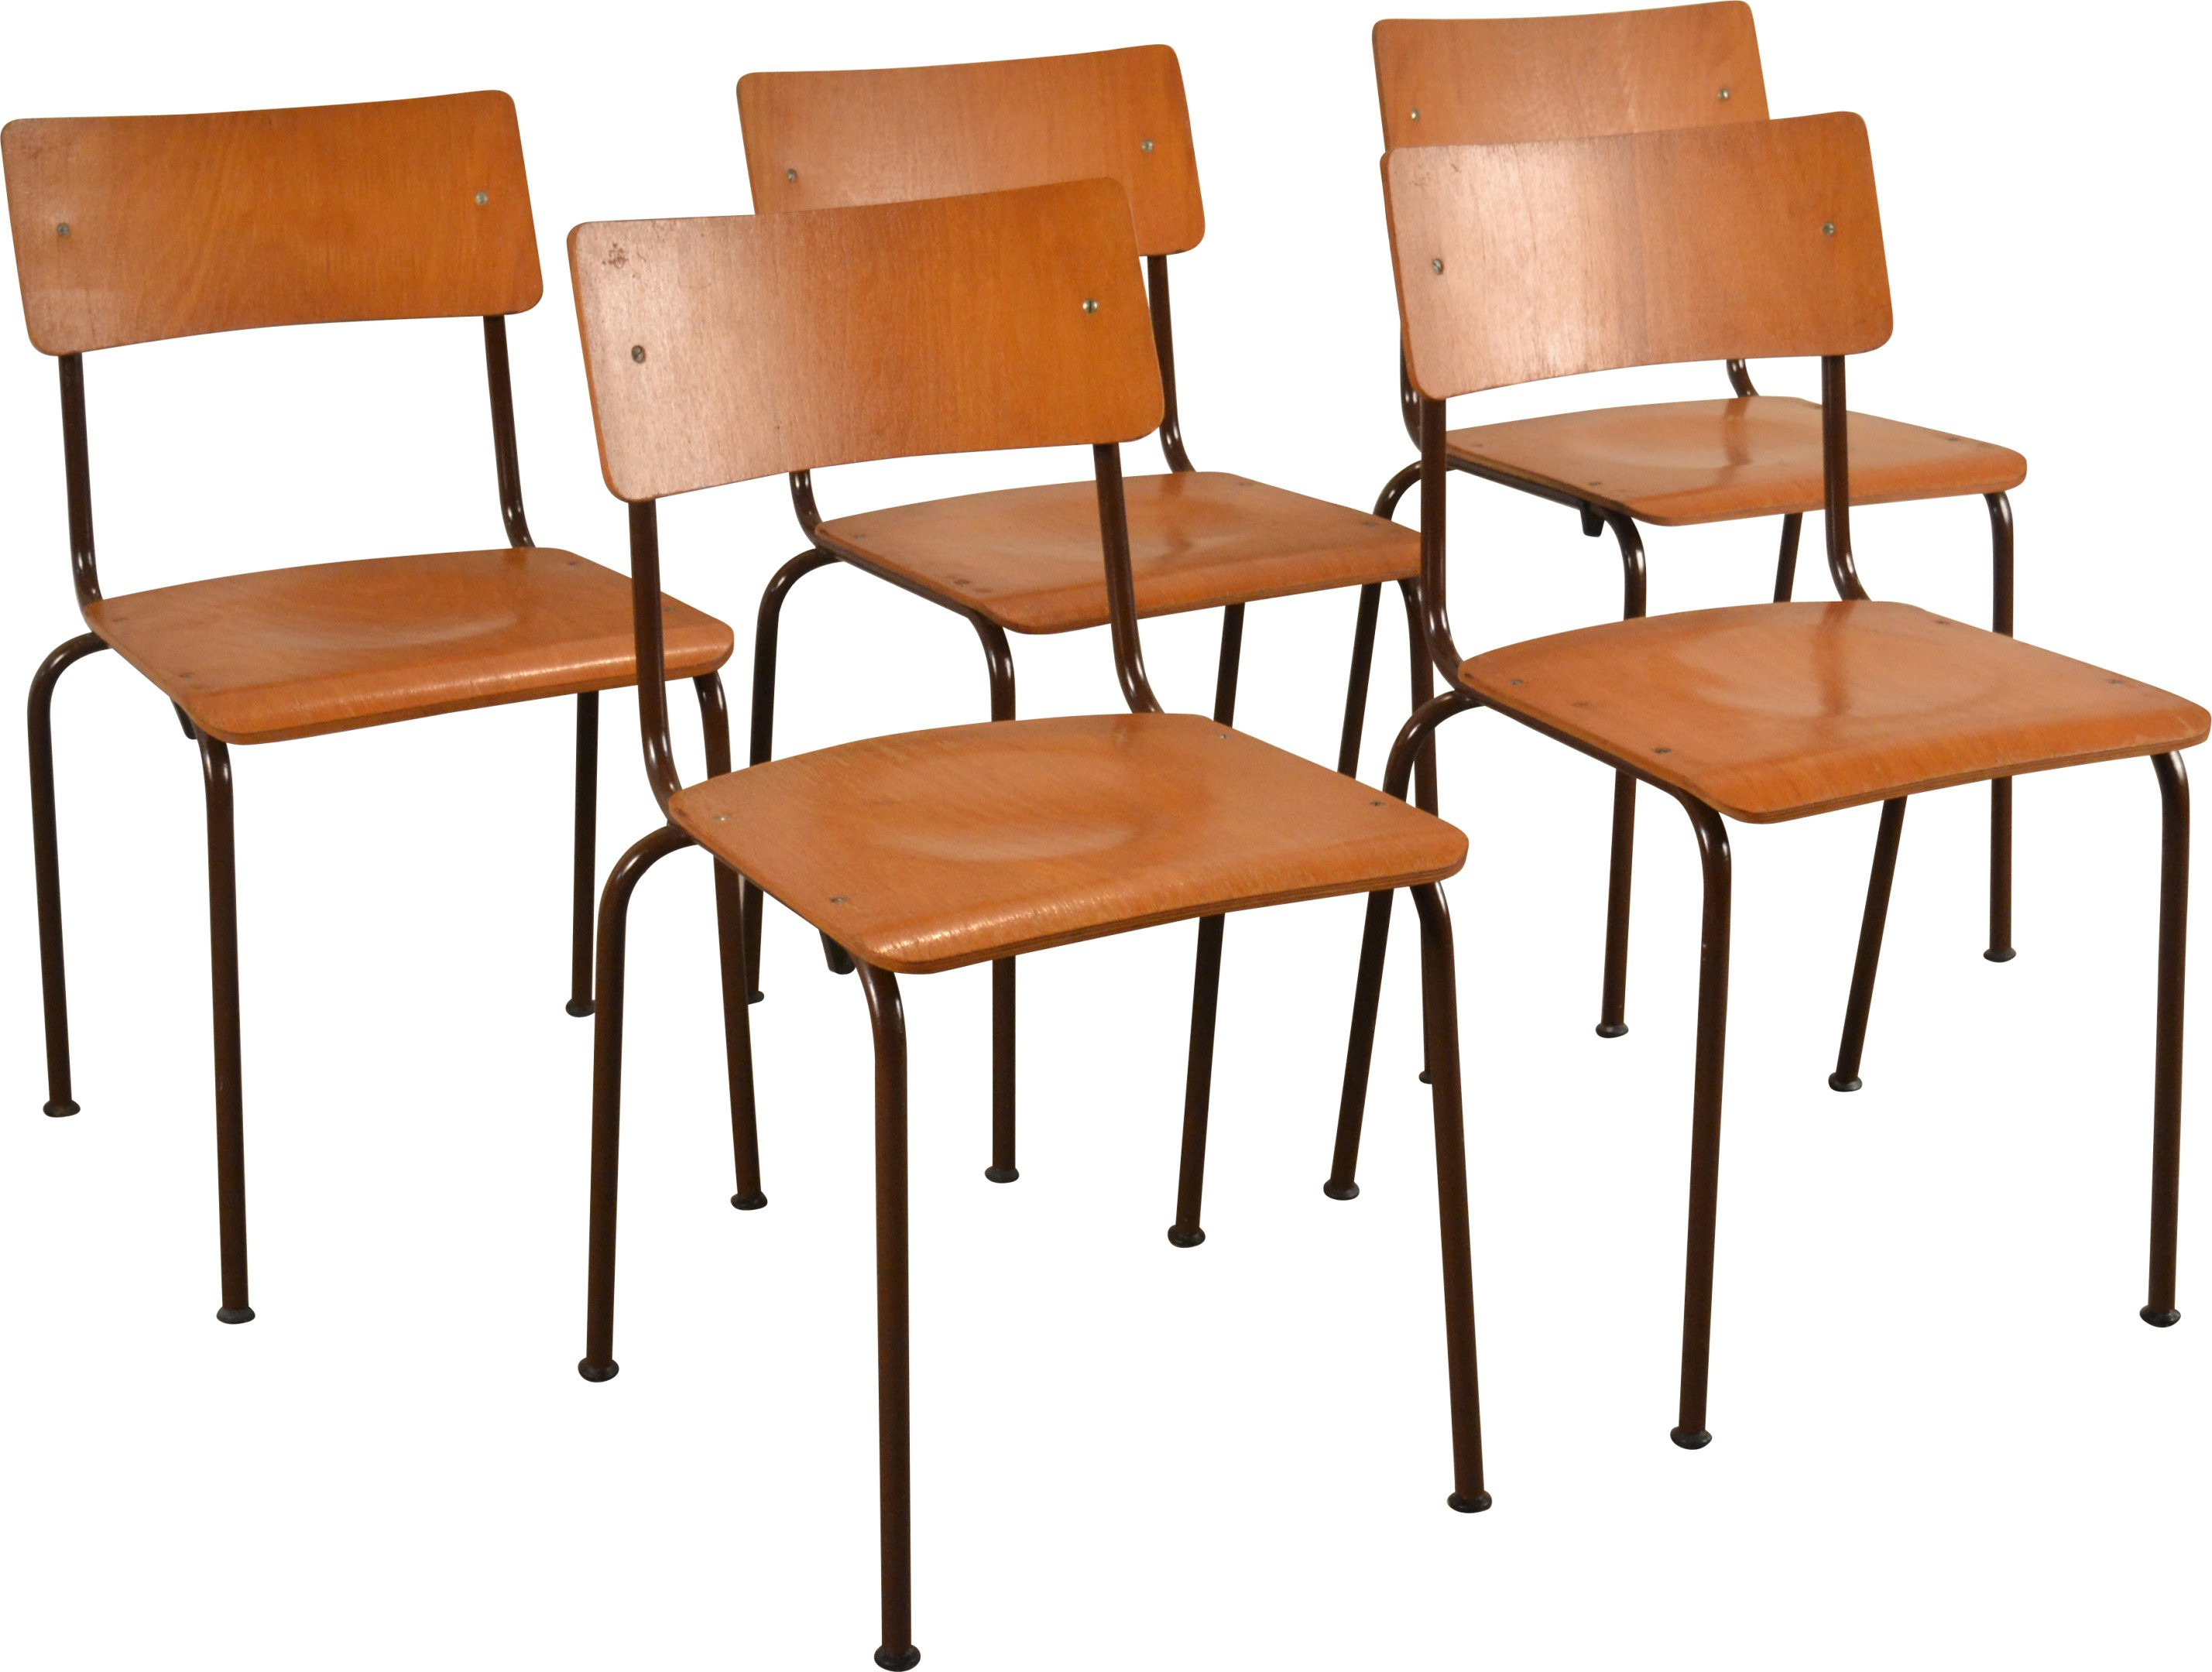 Set of Five Chairs, VEB Bemefa, Germany, 1970s